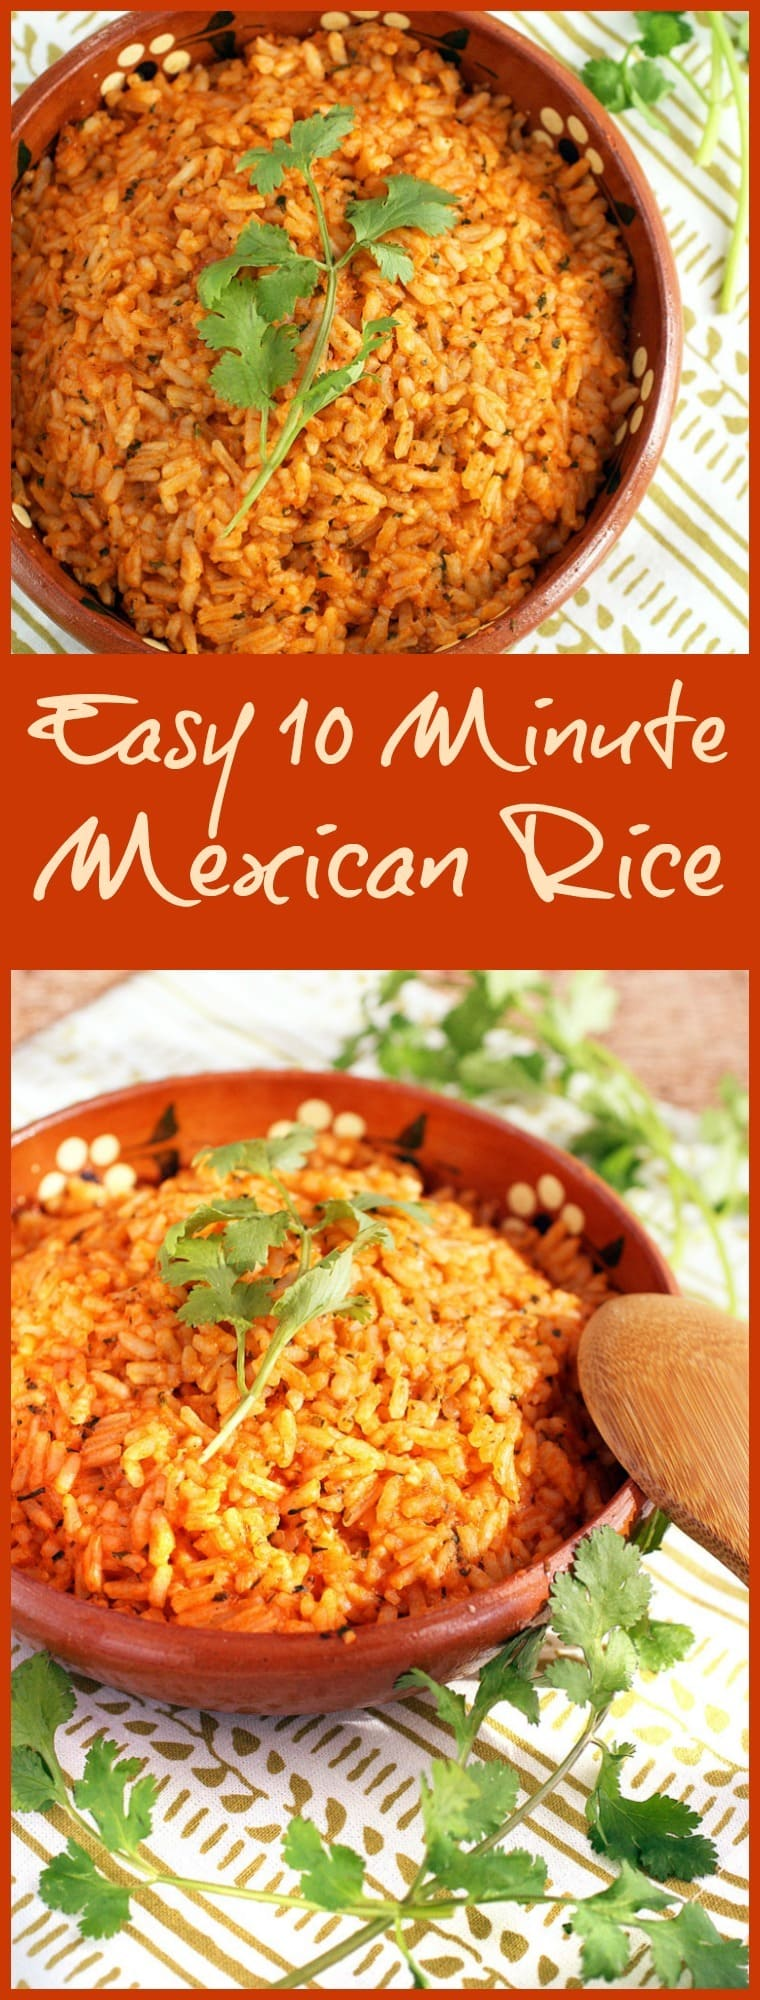 Mexican food made easy recipes